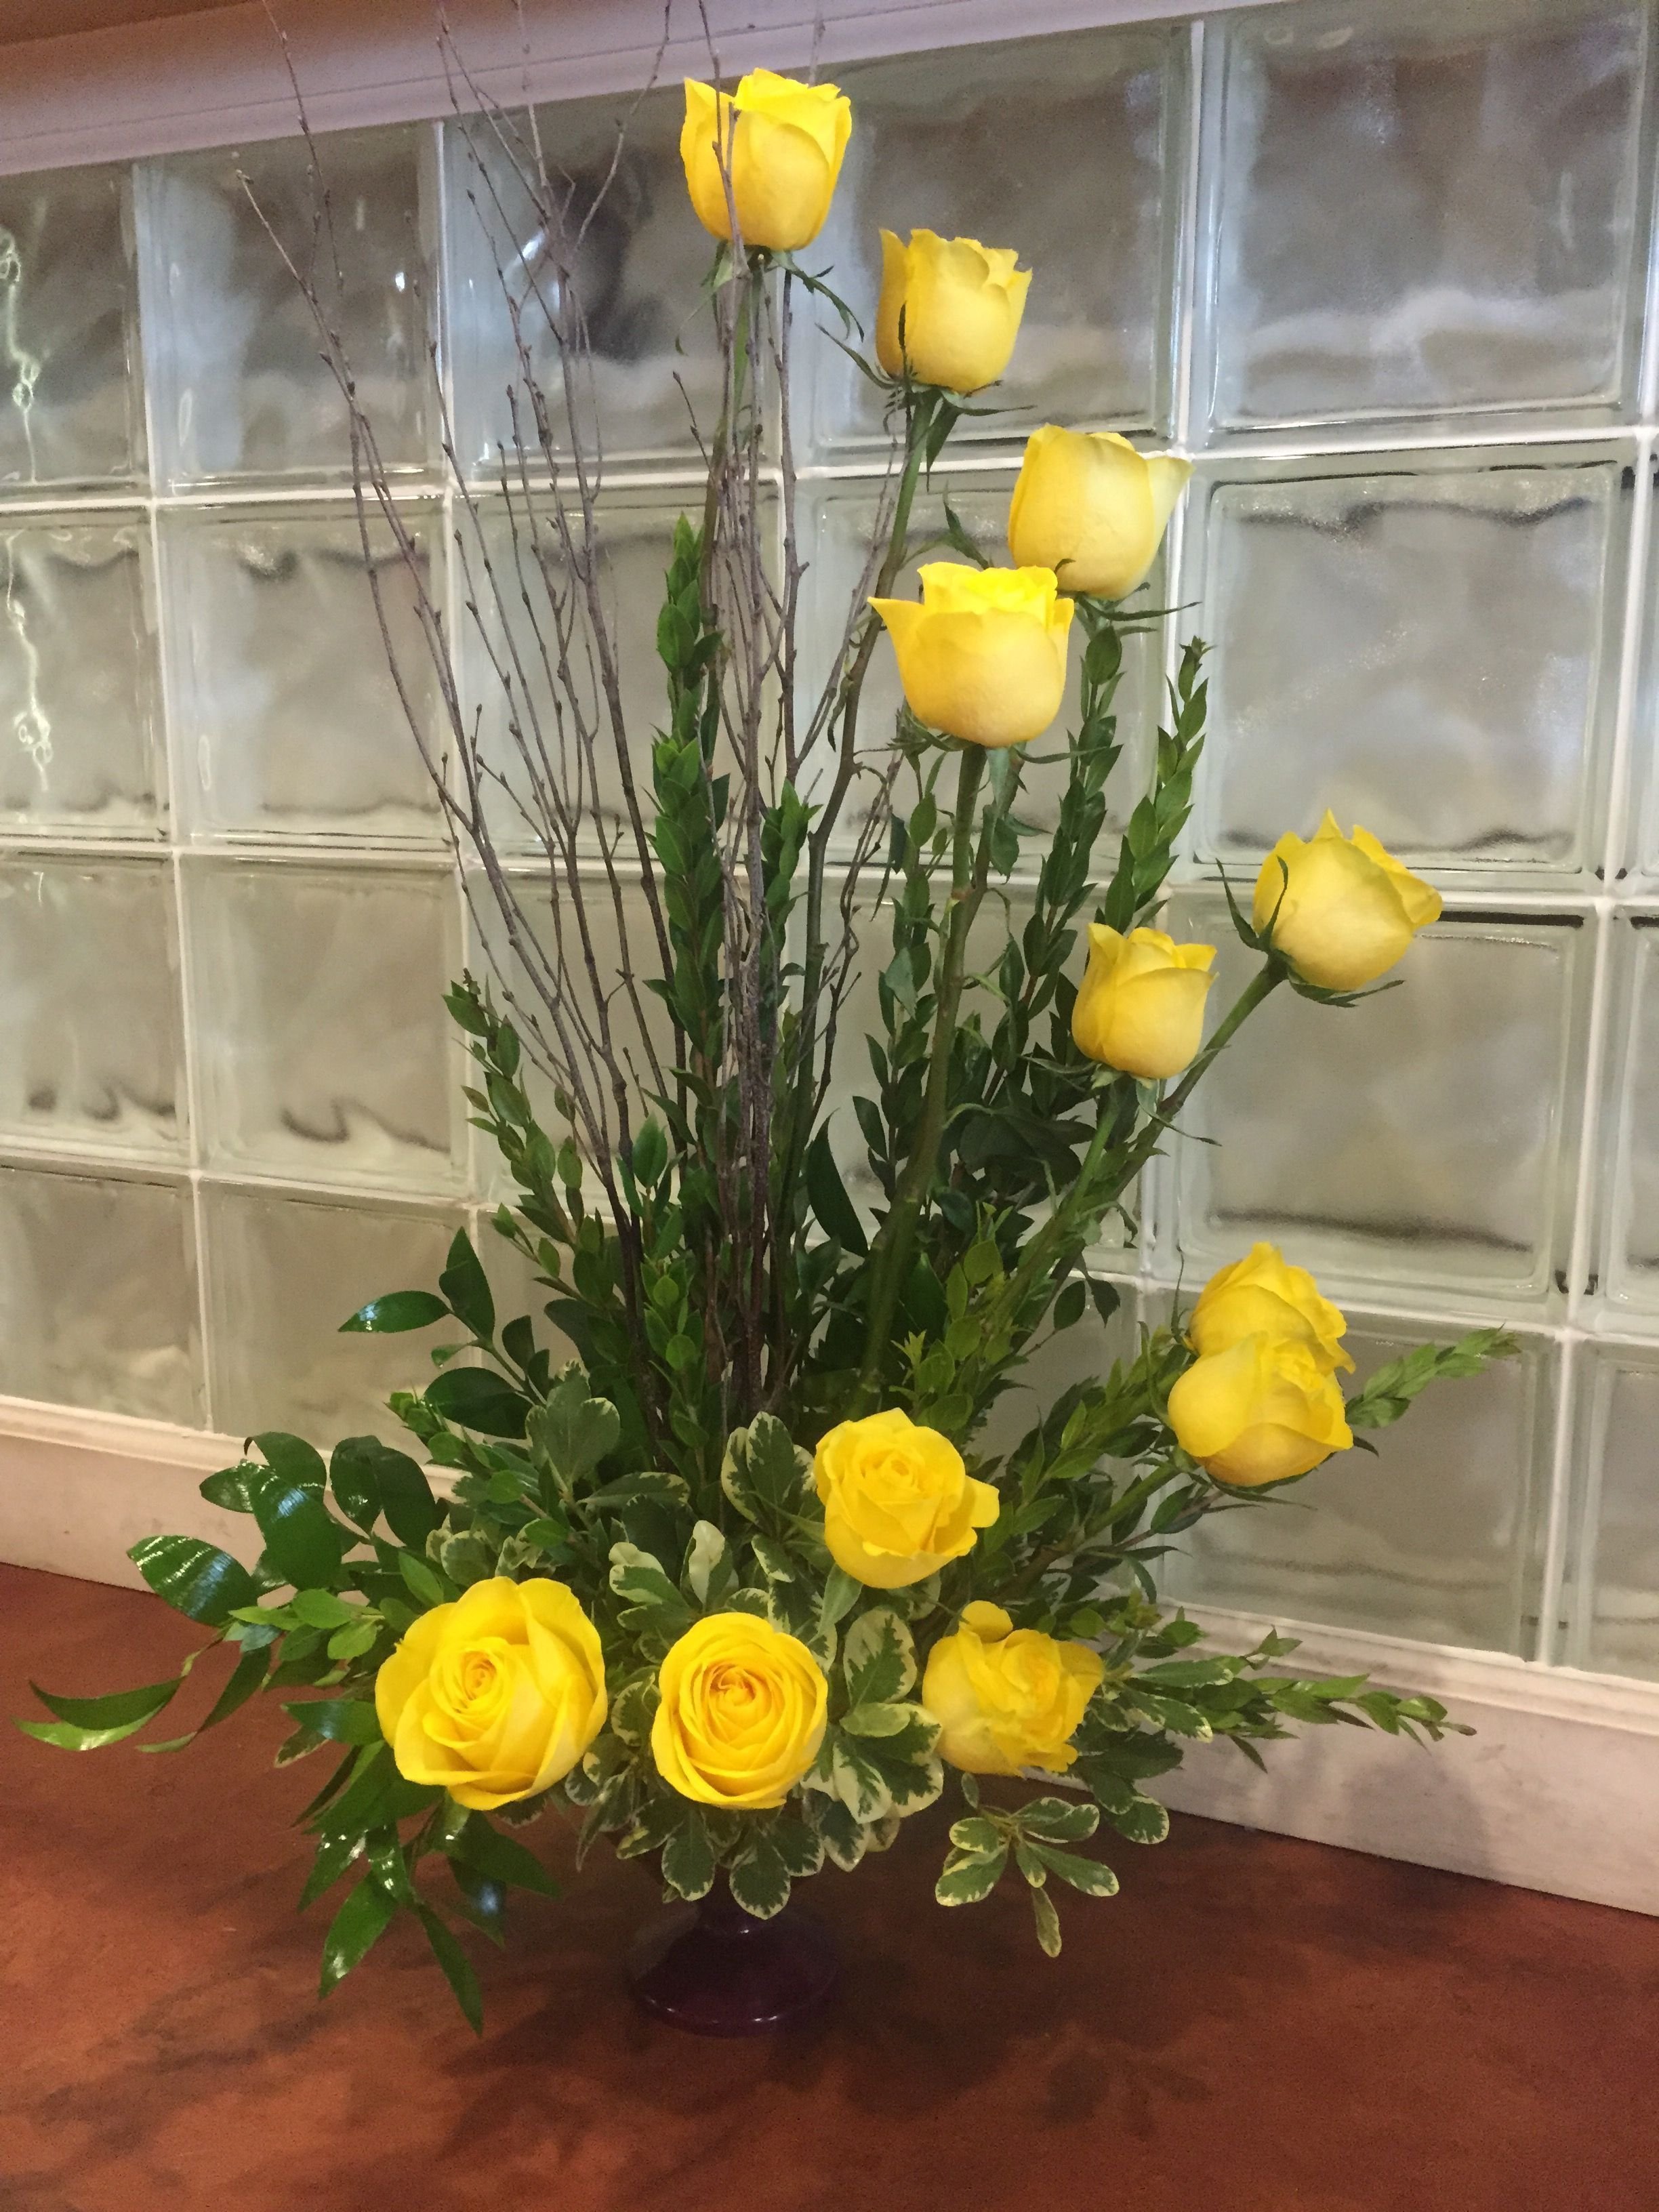 Spiral Style Long Stem Roses Arranged With Fancy Foliage And Birch